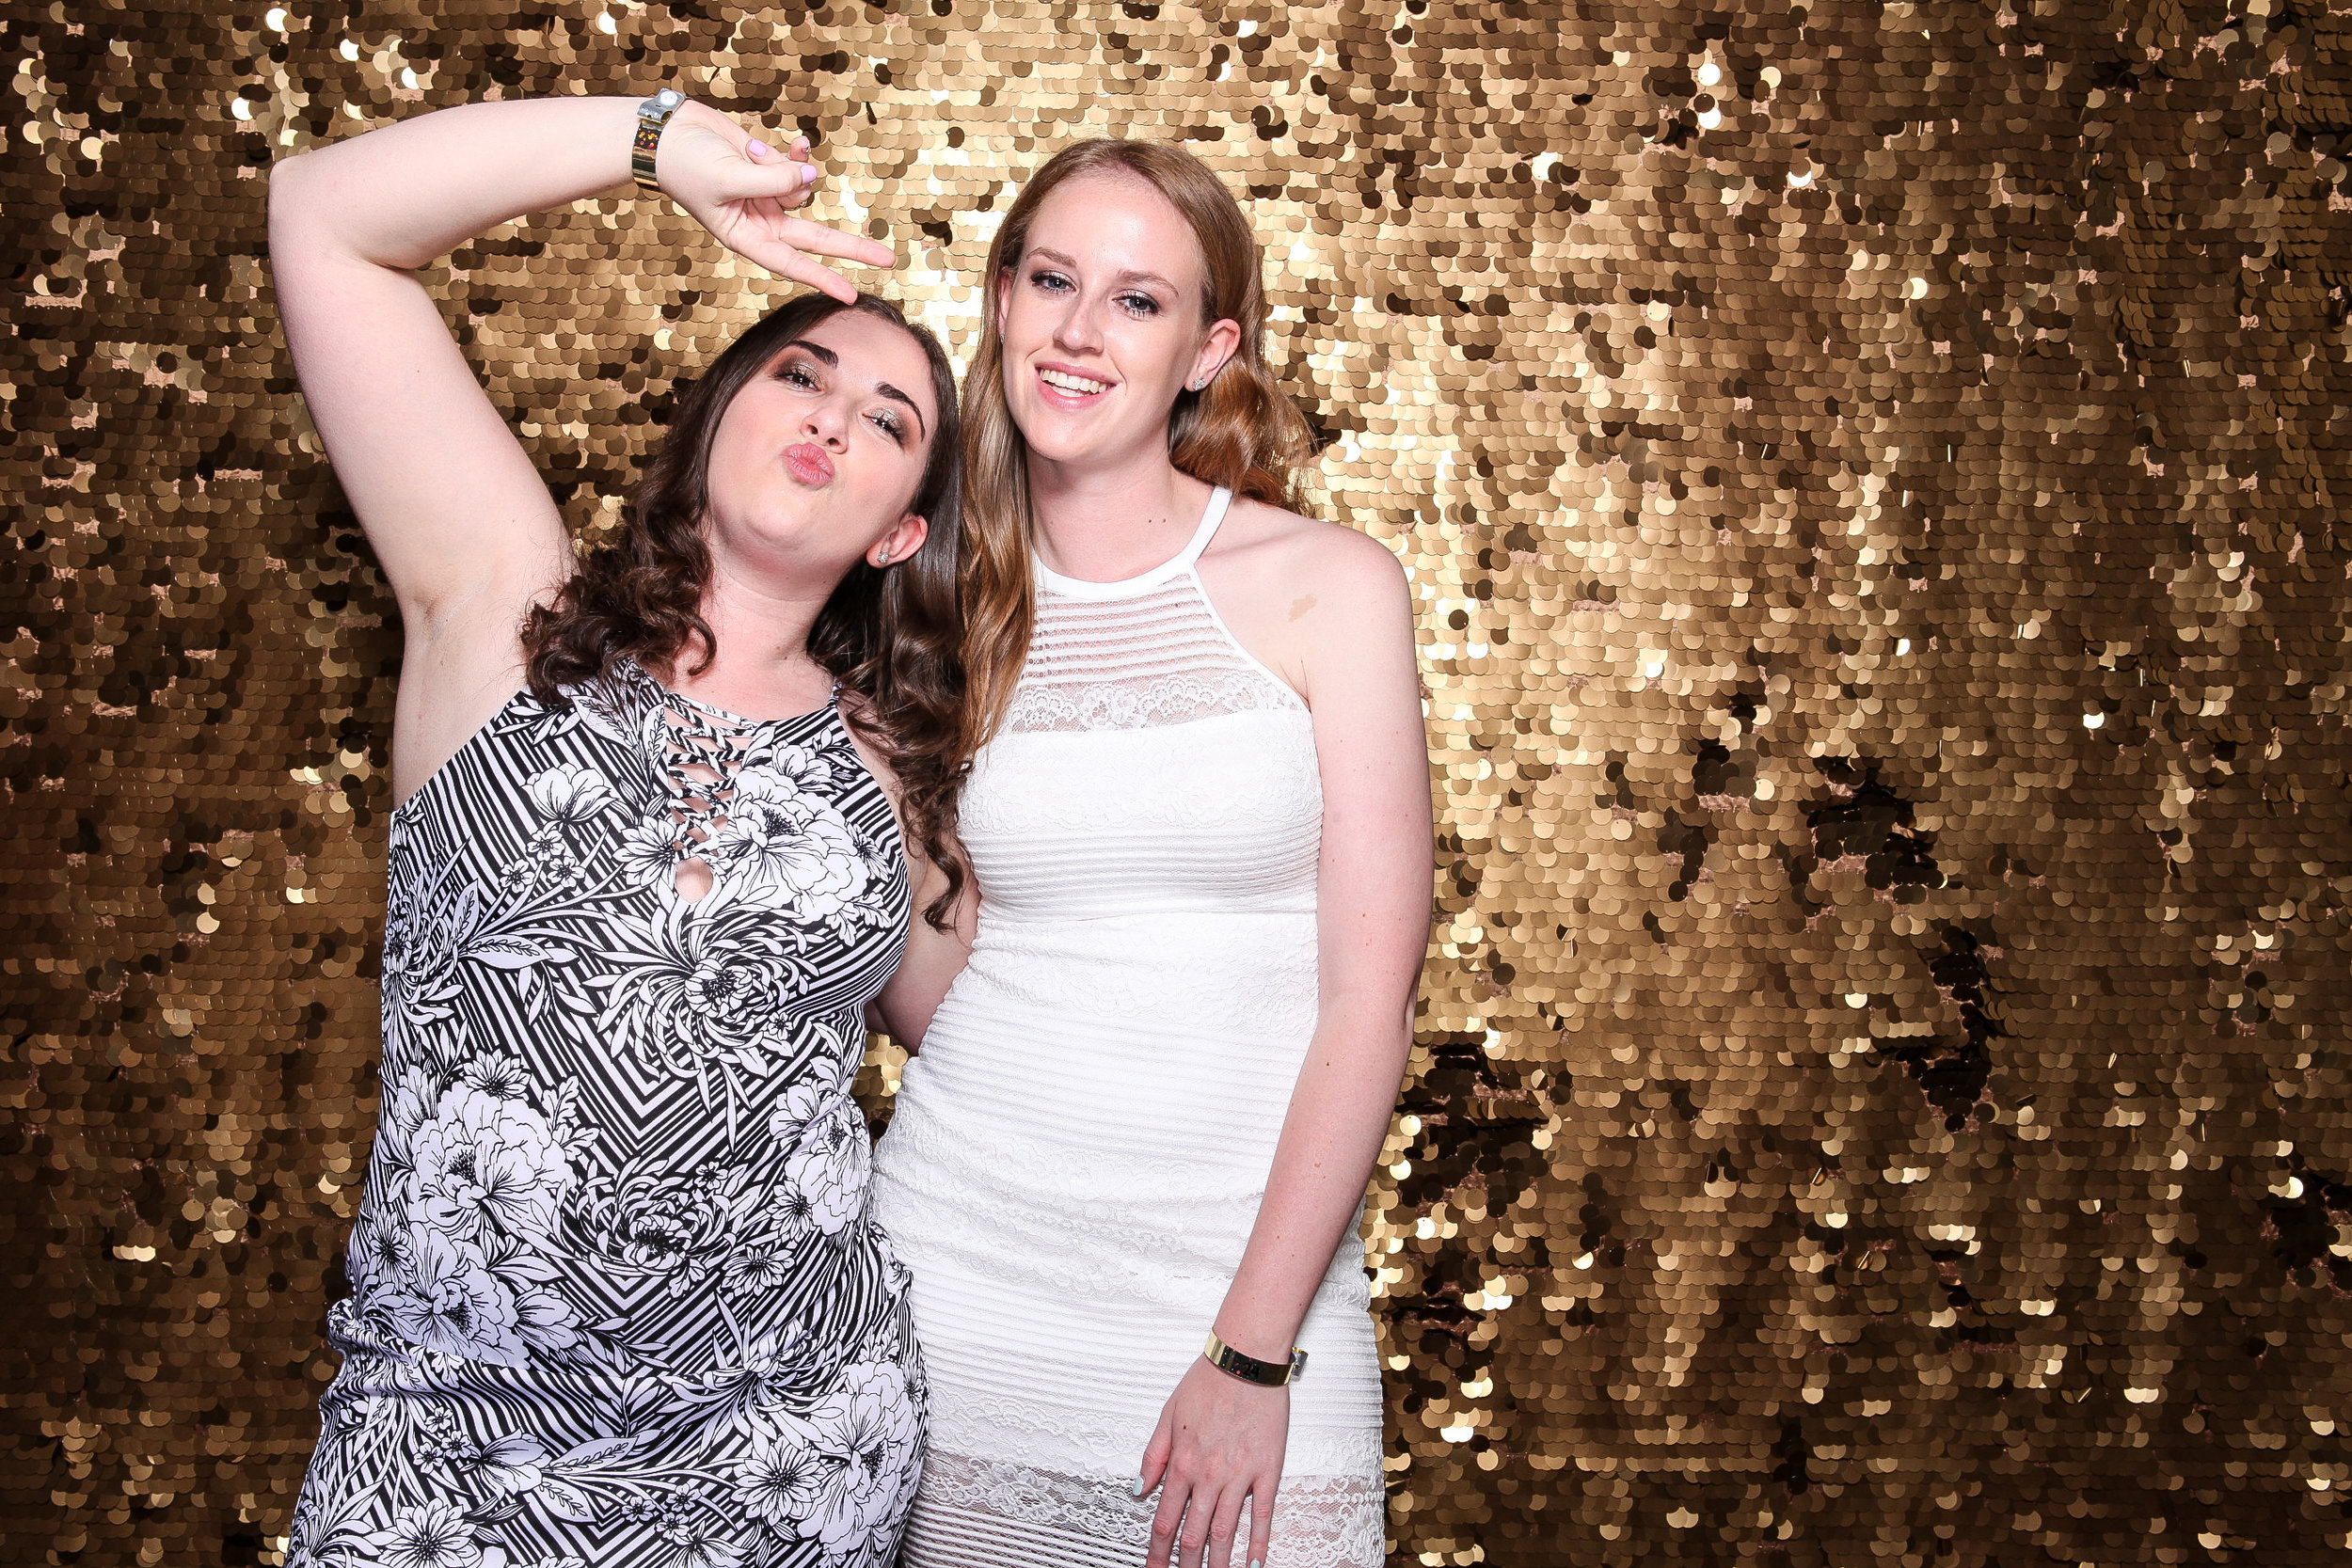 20190503_Adelphi_Senior_Formal-284.jpg